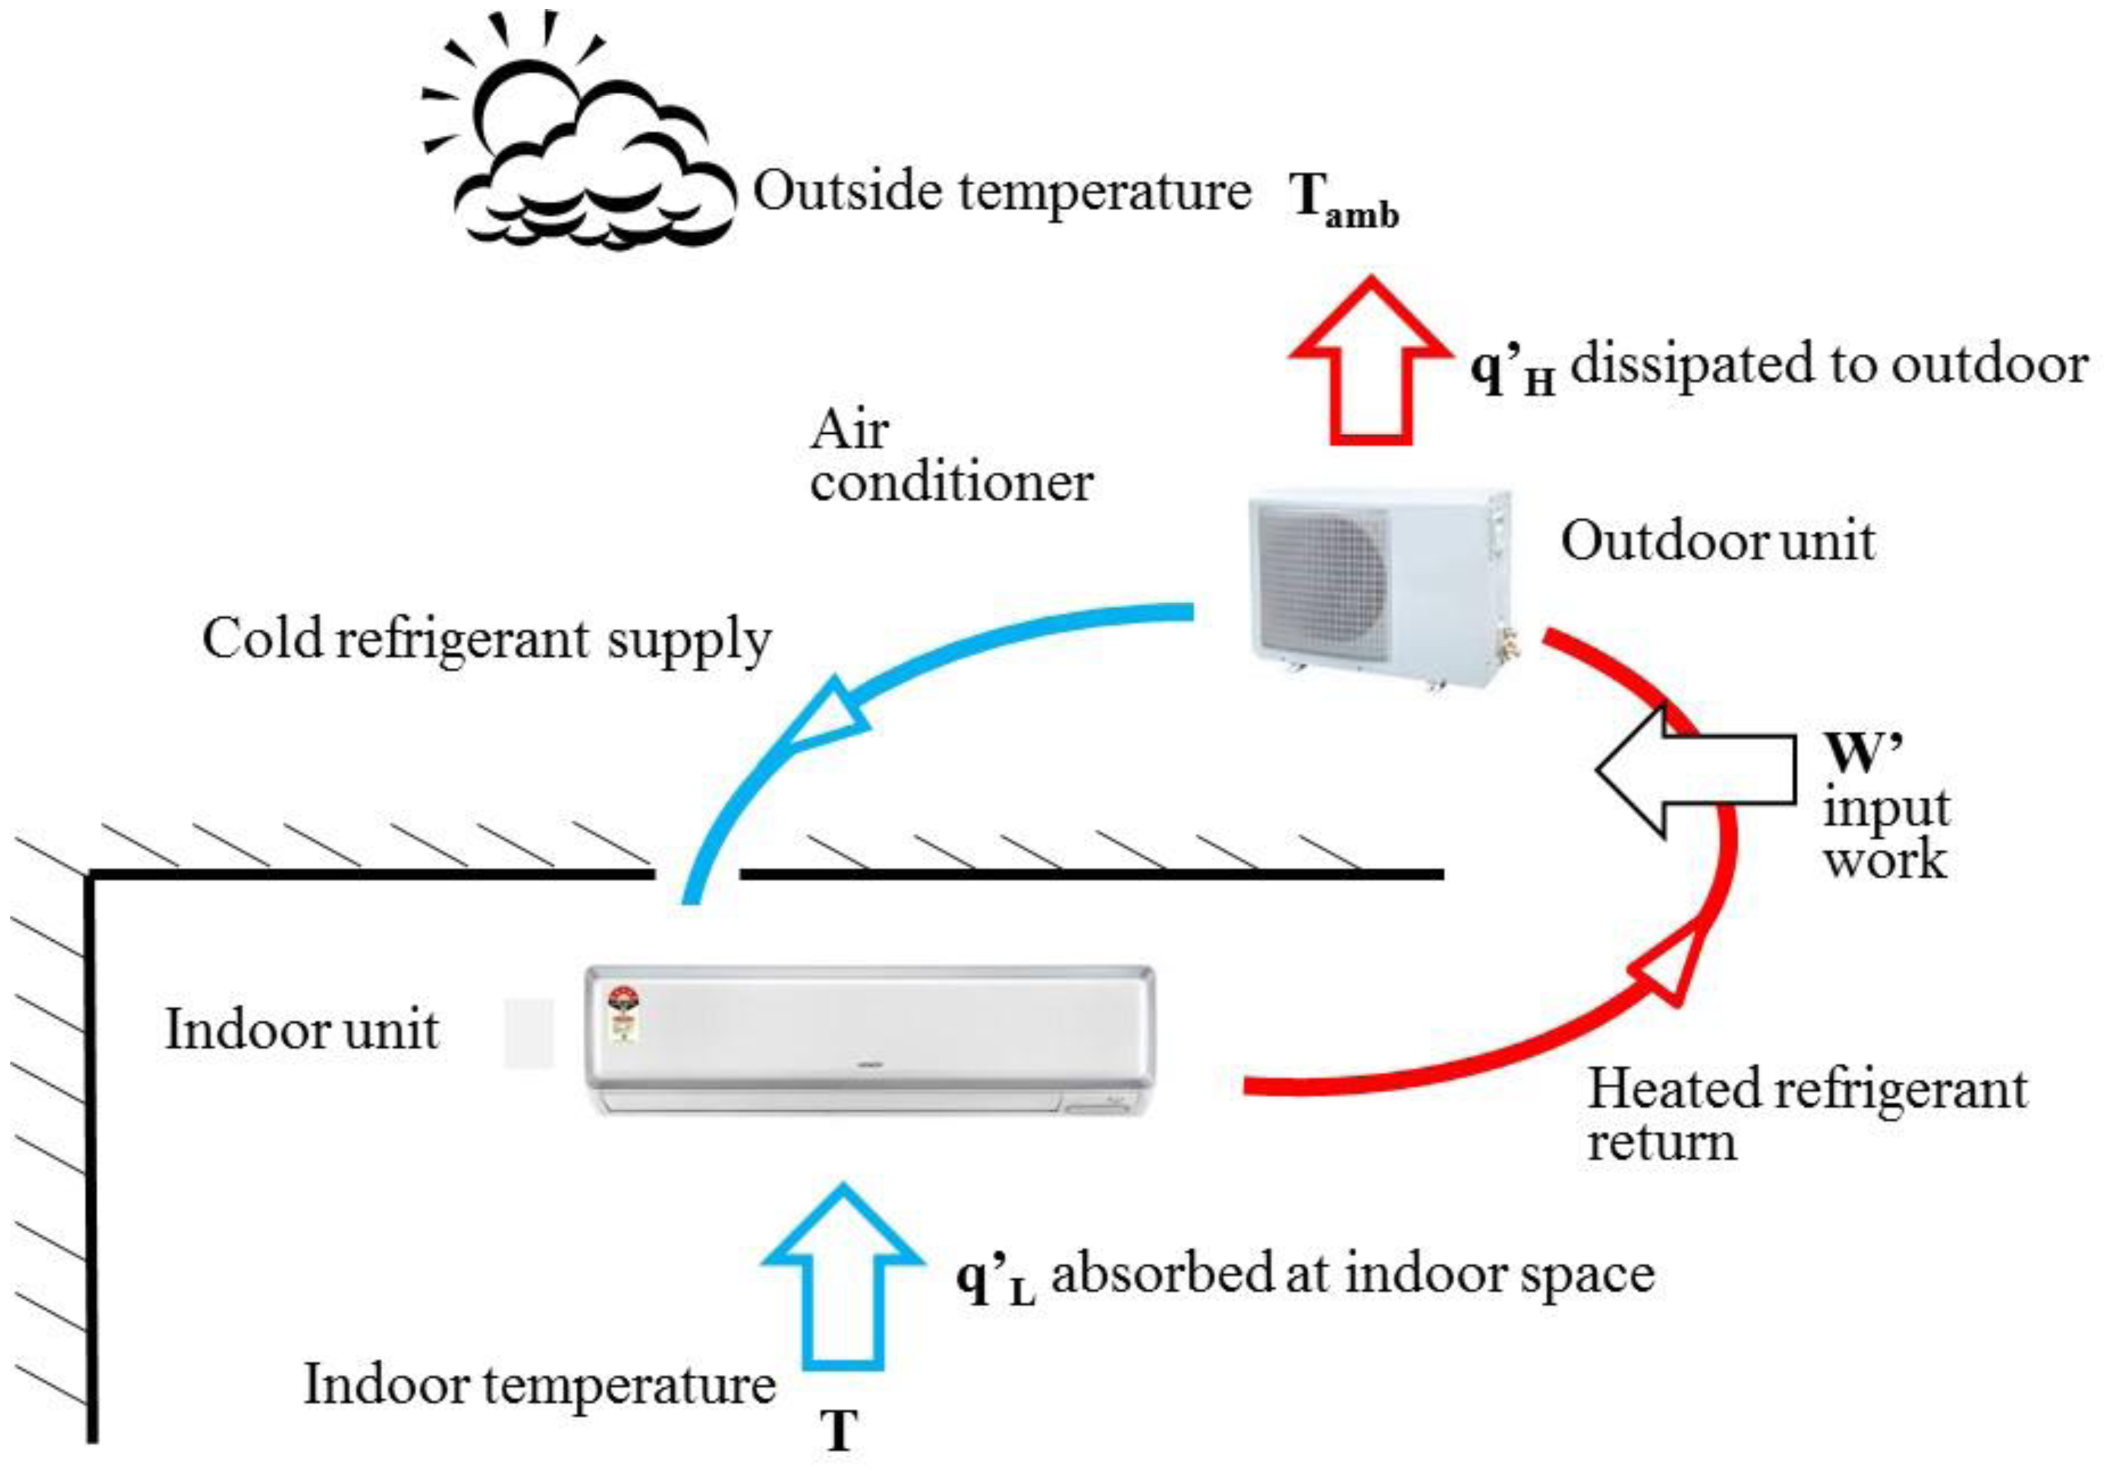 Full Text Smart Sensors Enable Smart Air Conditioning Control HTML #0391C8